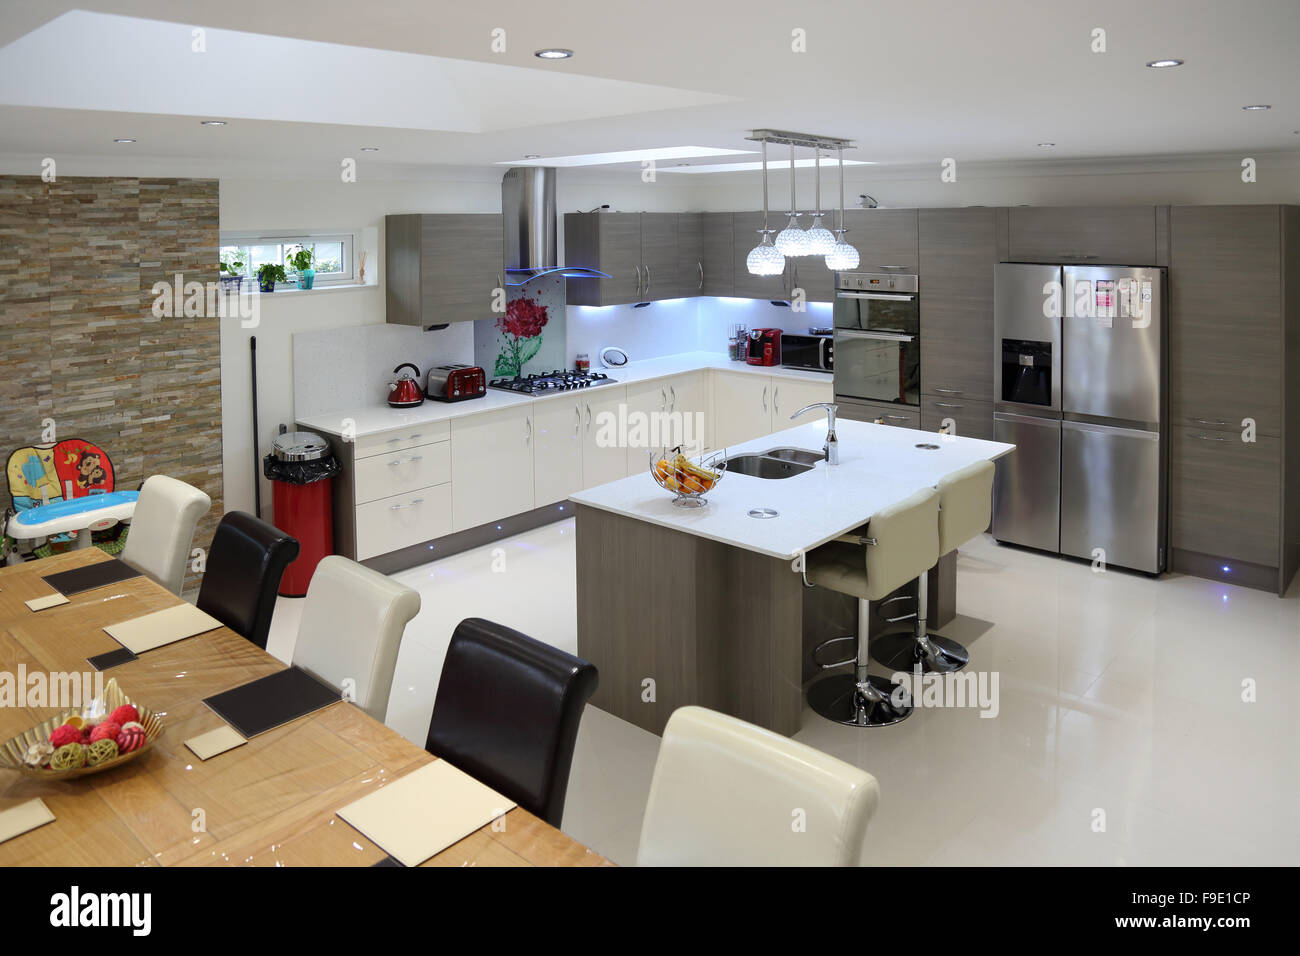 Kitchen Dining Room In A Newly Refurbished House Showing Units Large Fridge And Plastic Cover Over The Table